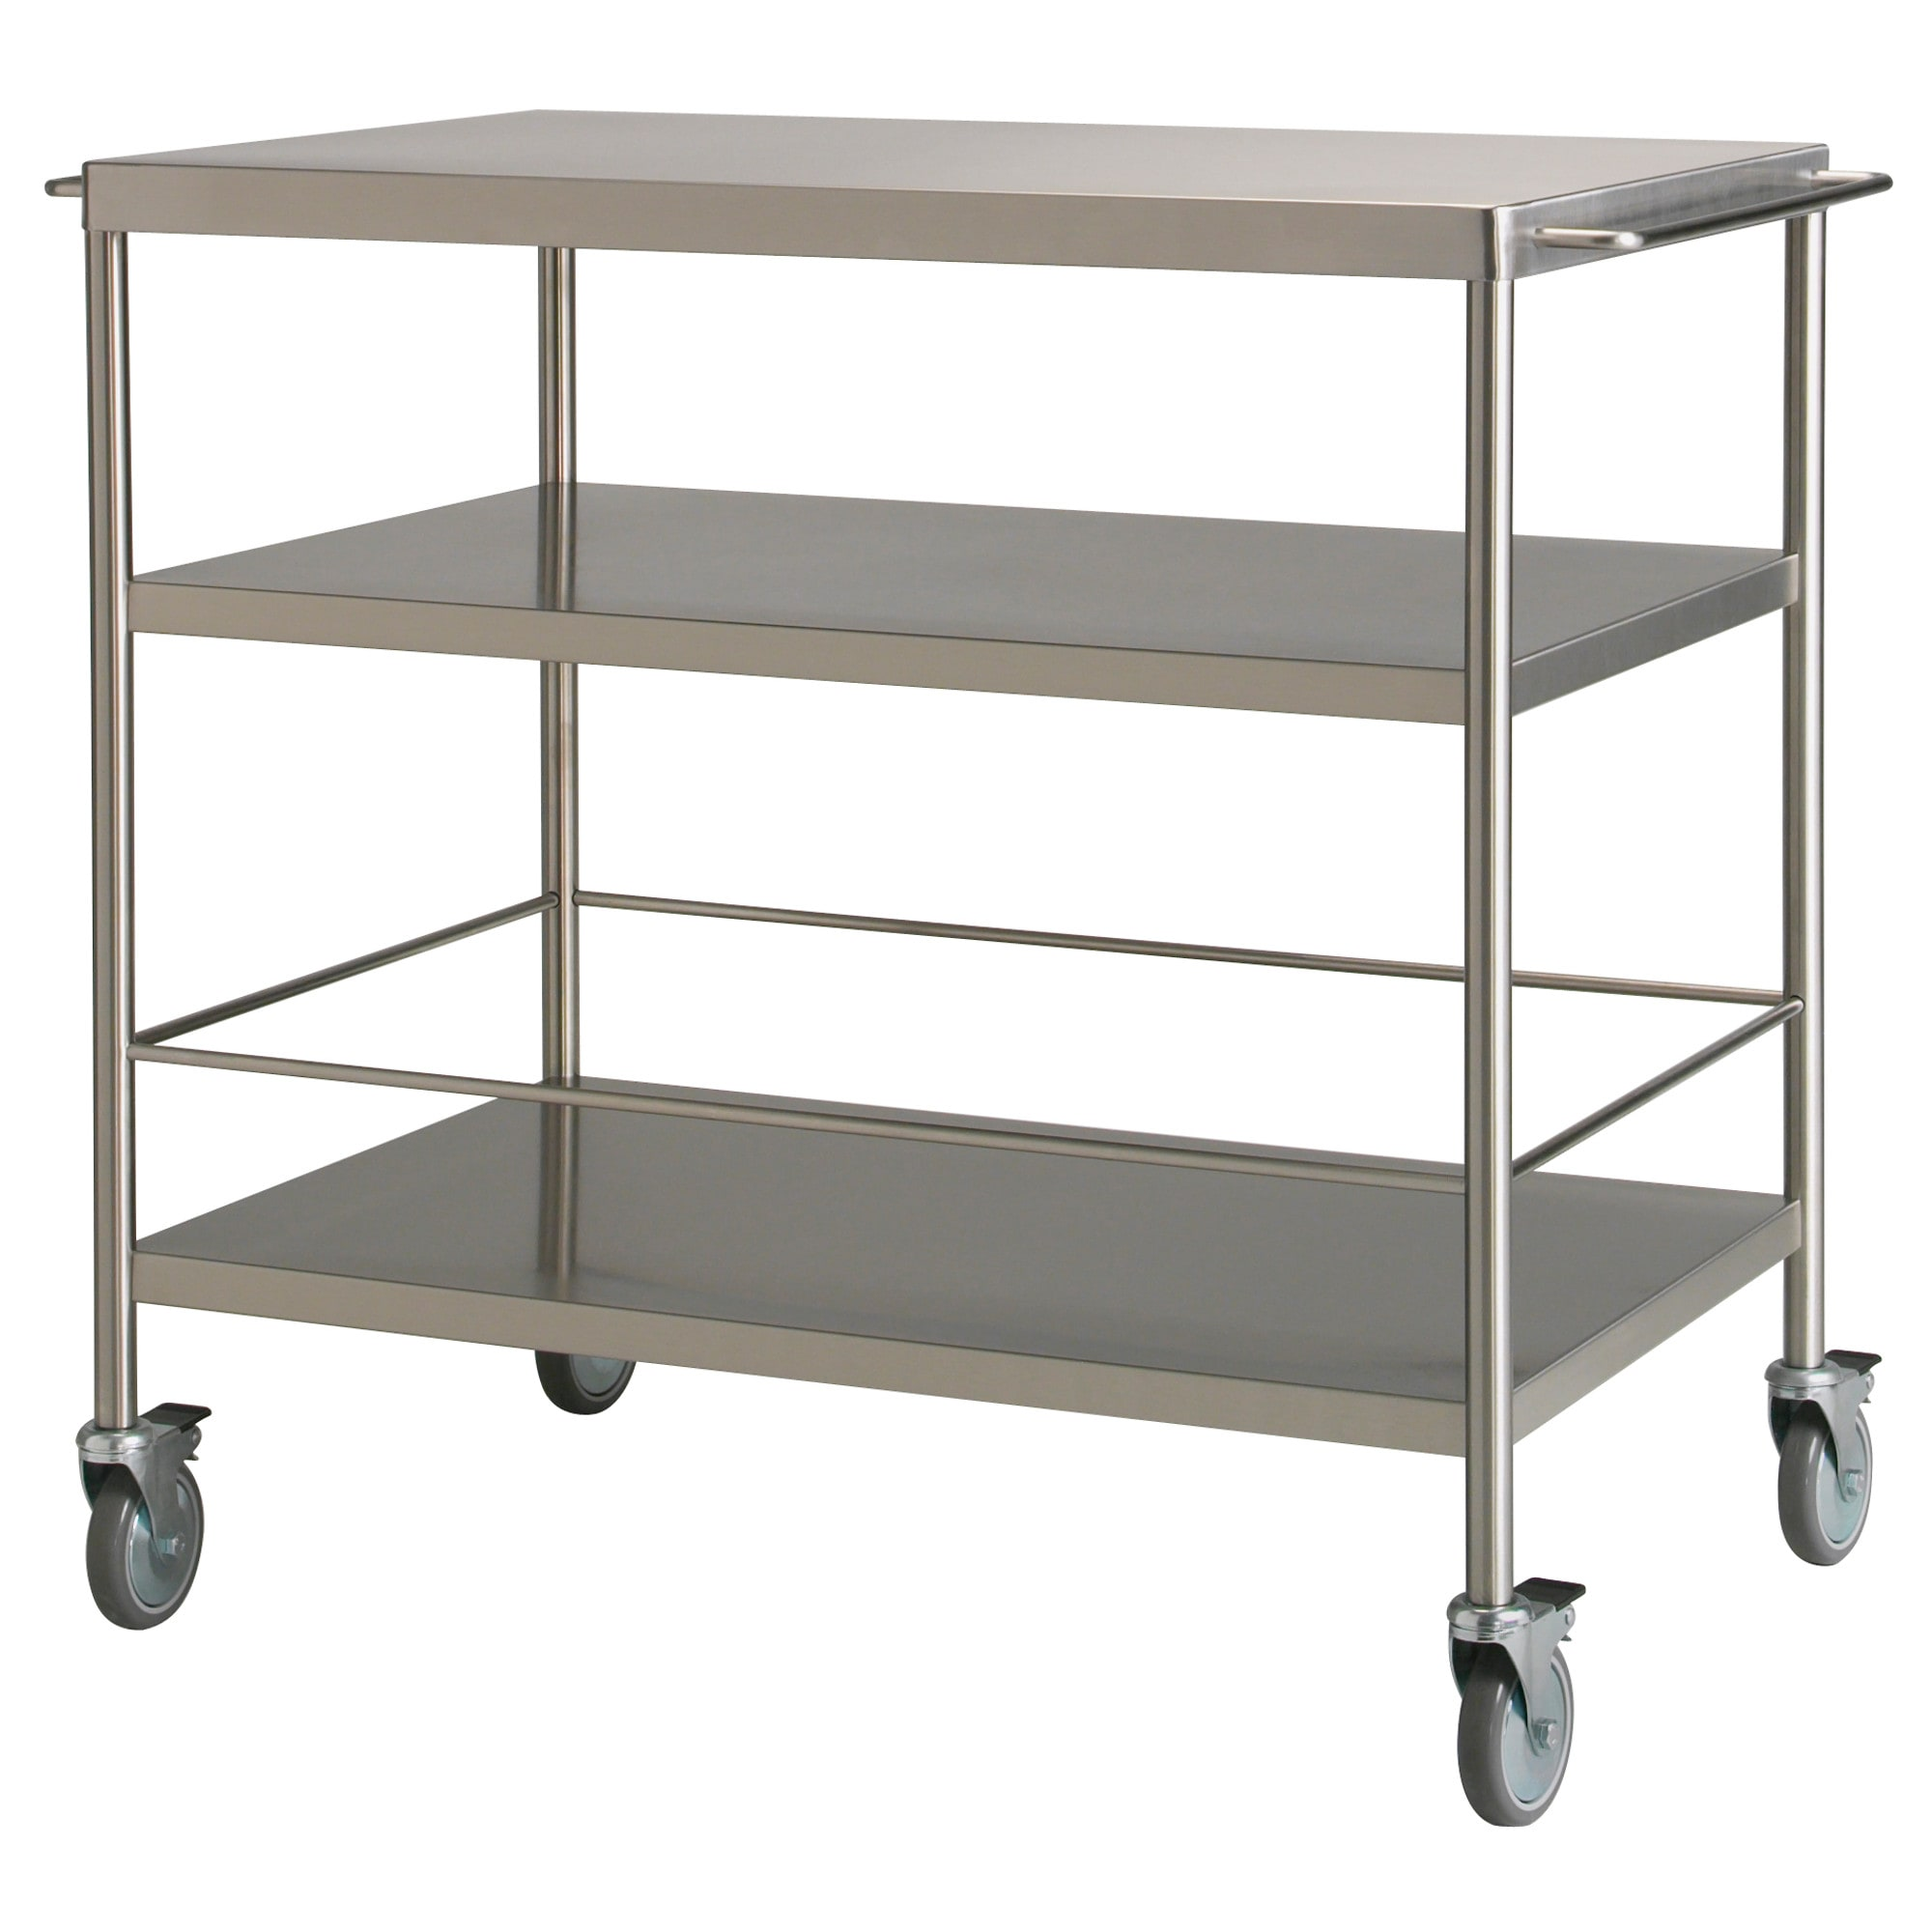 rolling kitchen chairs FLYTTA kitchen cart stainless steel Length 38 5 8 Width 22